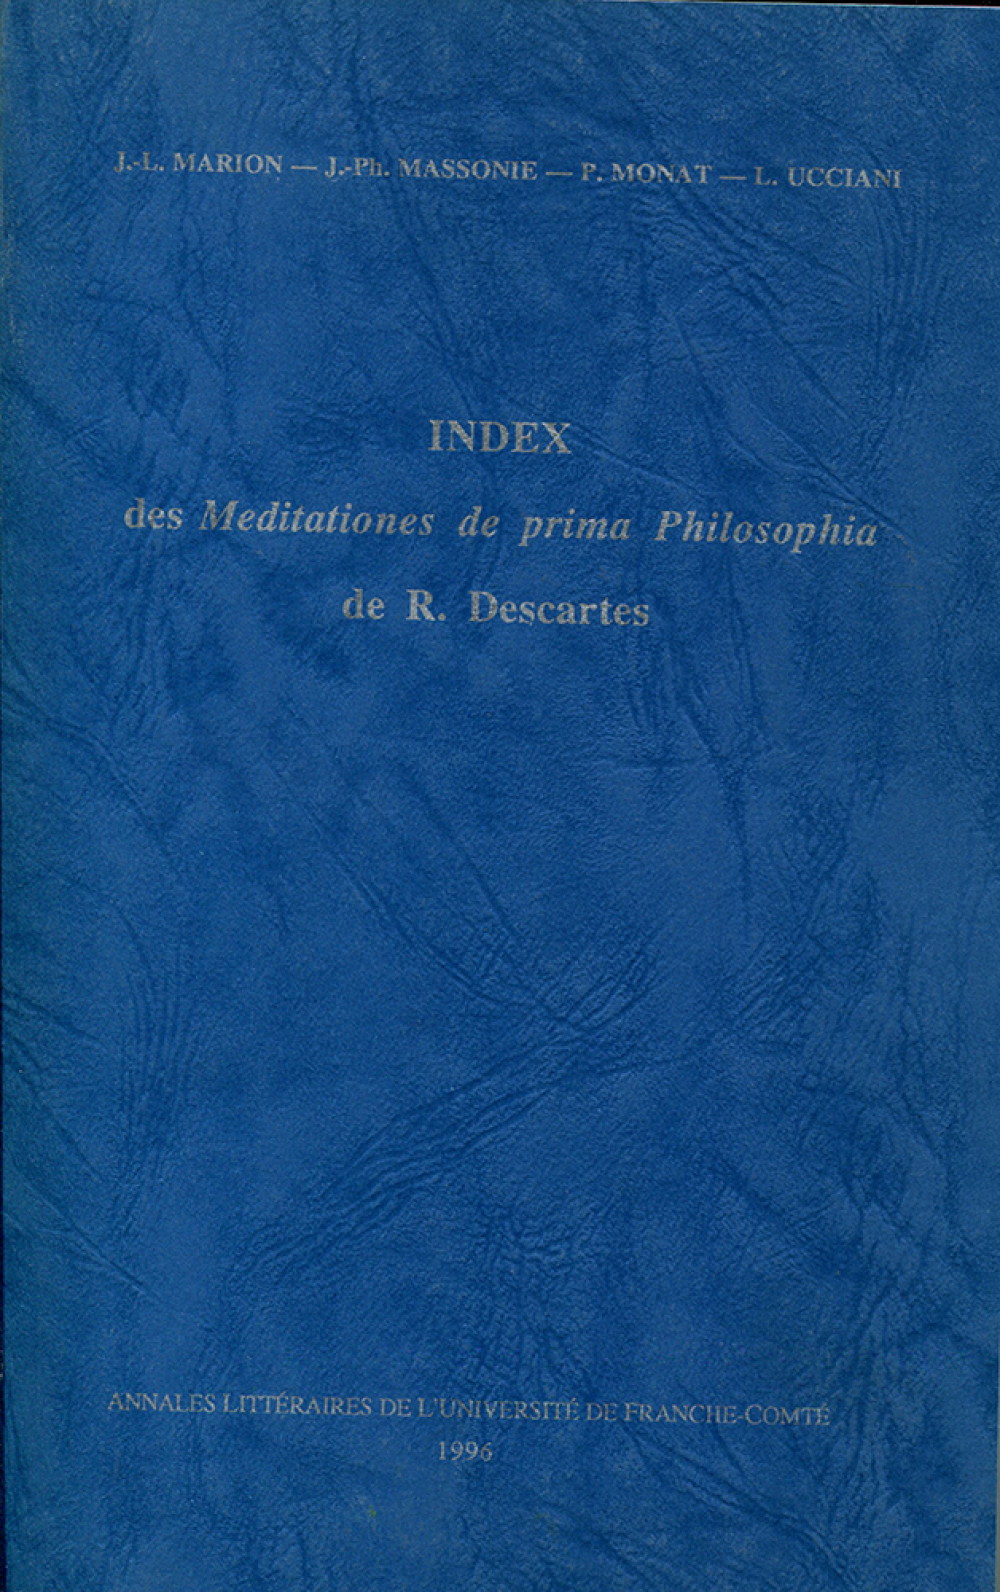 Index des <i>Meditationes de prima Philosophia</i> de R. Descartes